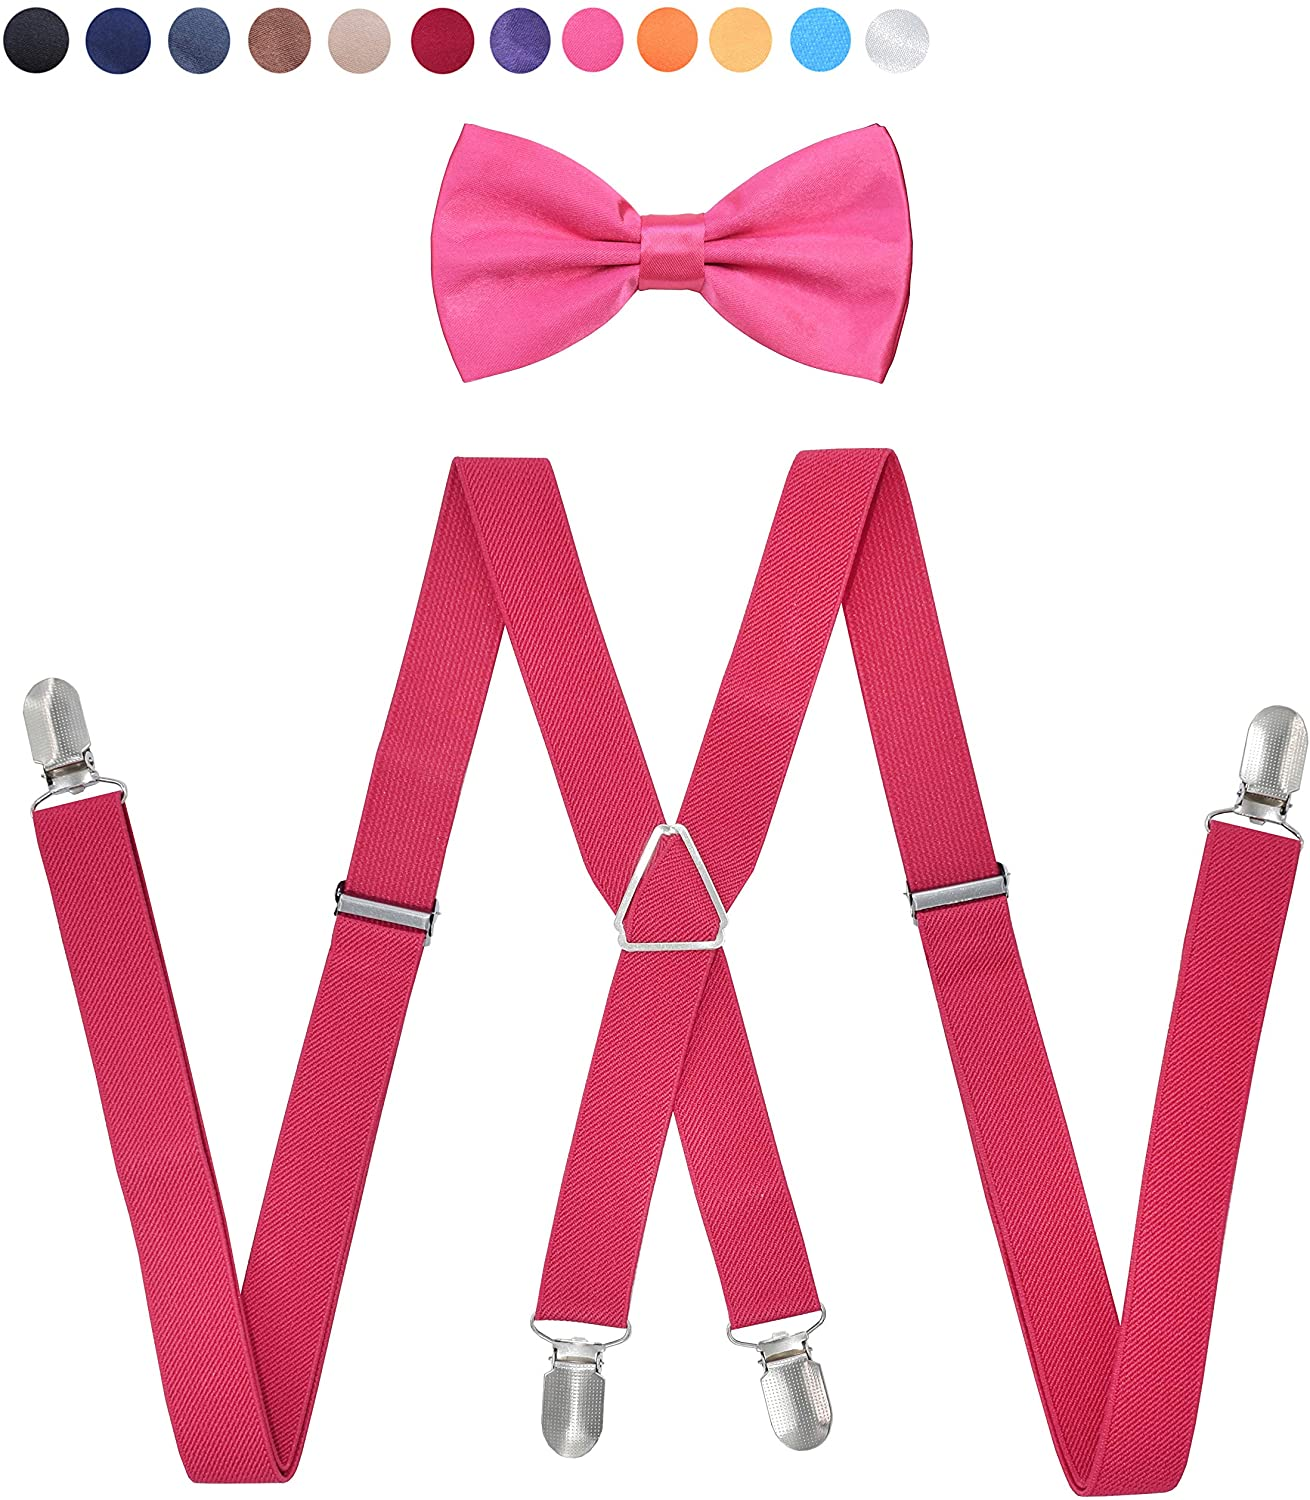 Mens Suspenders Bowtie Set,Type X Super Tight Anti-Skid Elastic Four Clips,Adjustable Bow Tie, Unisex for Teenager and Women